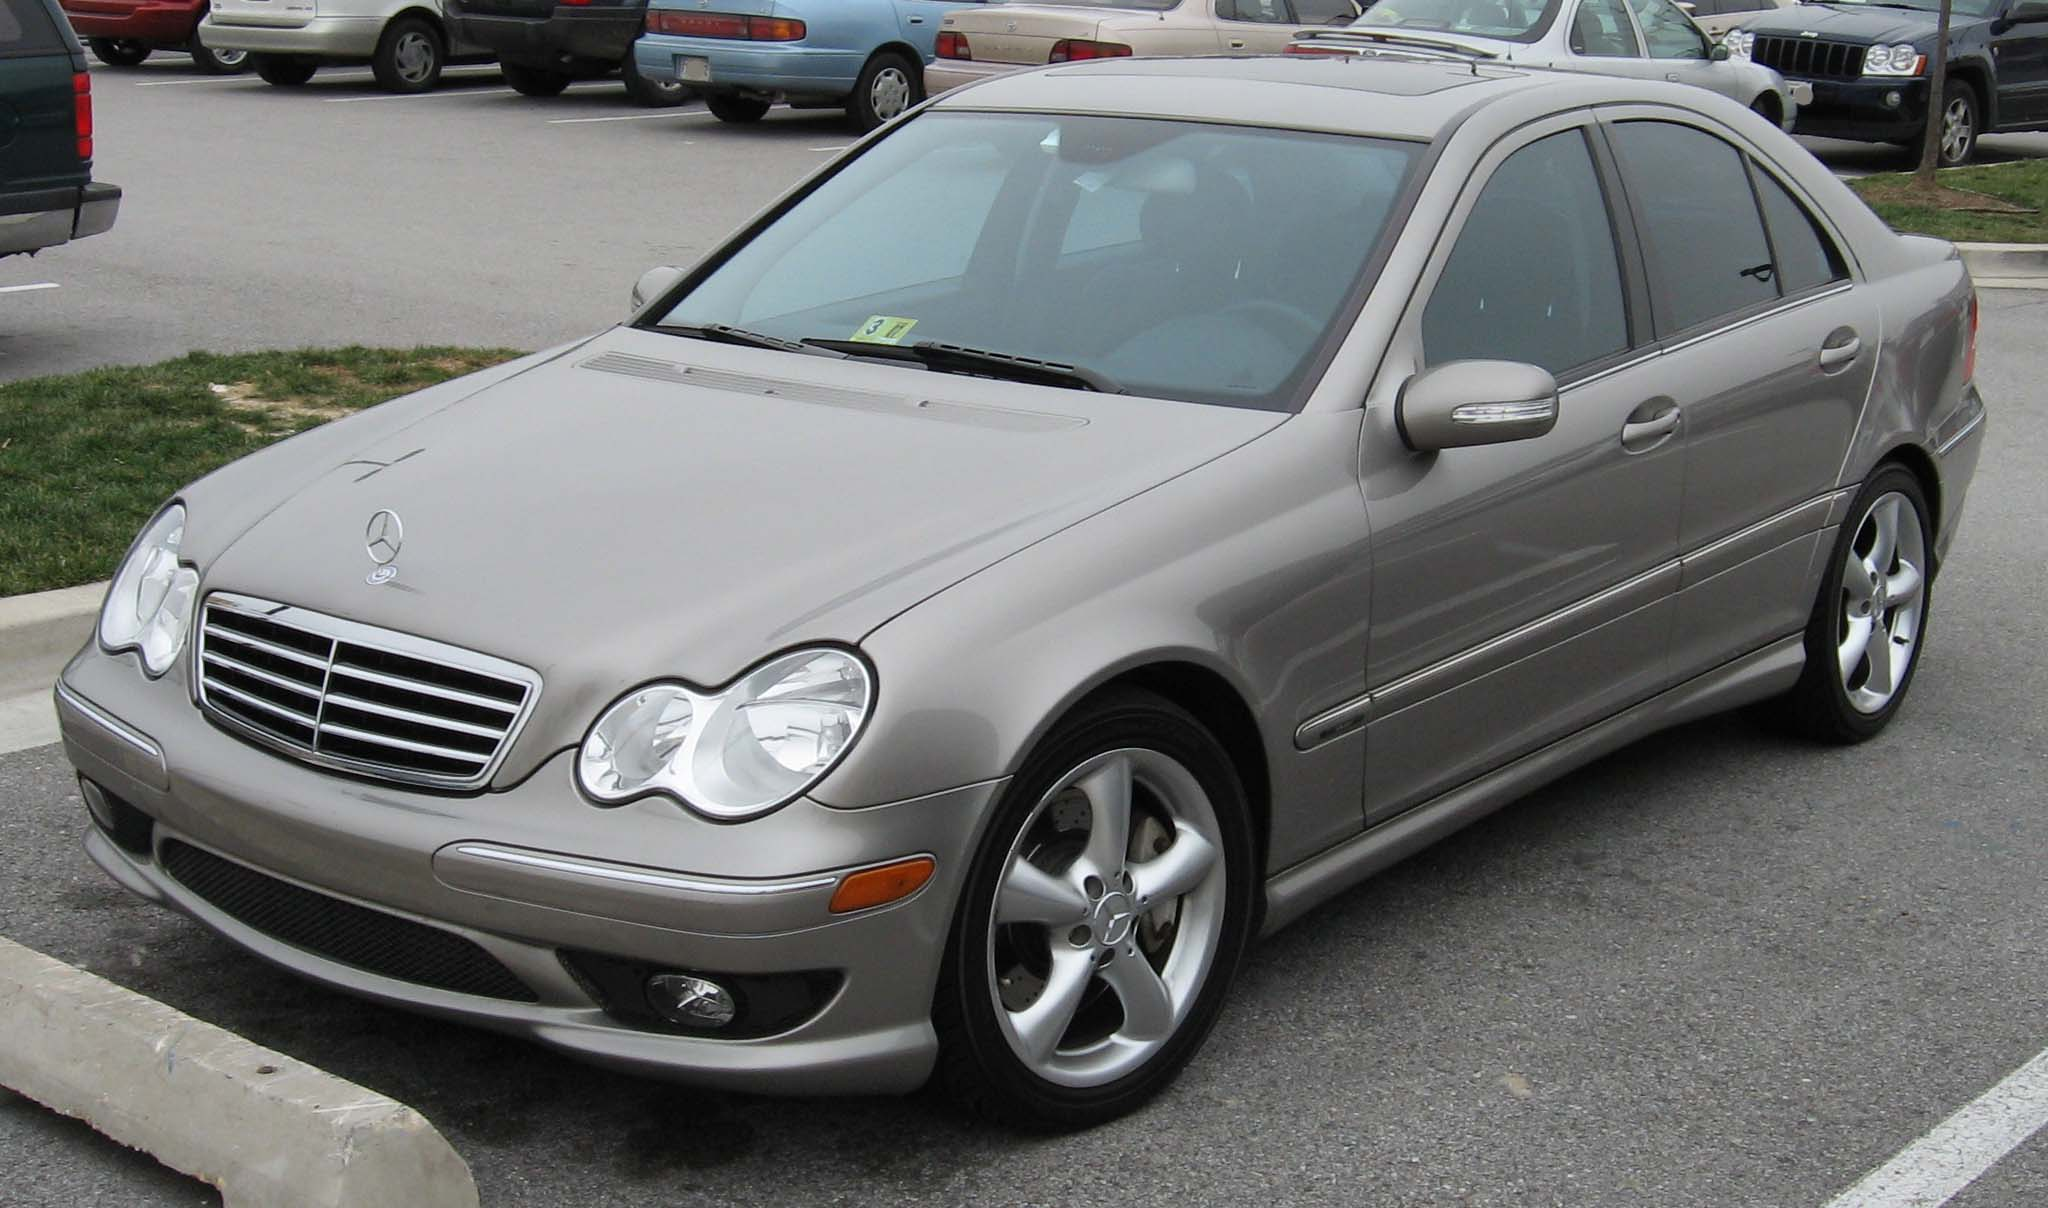 http://upload.wikimedia.org/wikipedia/commons/1/19/2005-2007_Mercedes-Benz_C-Class.jpg